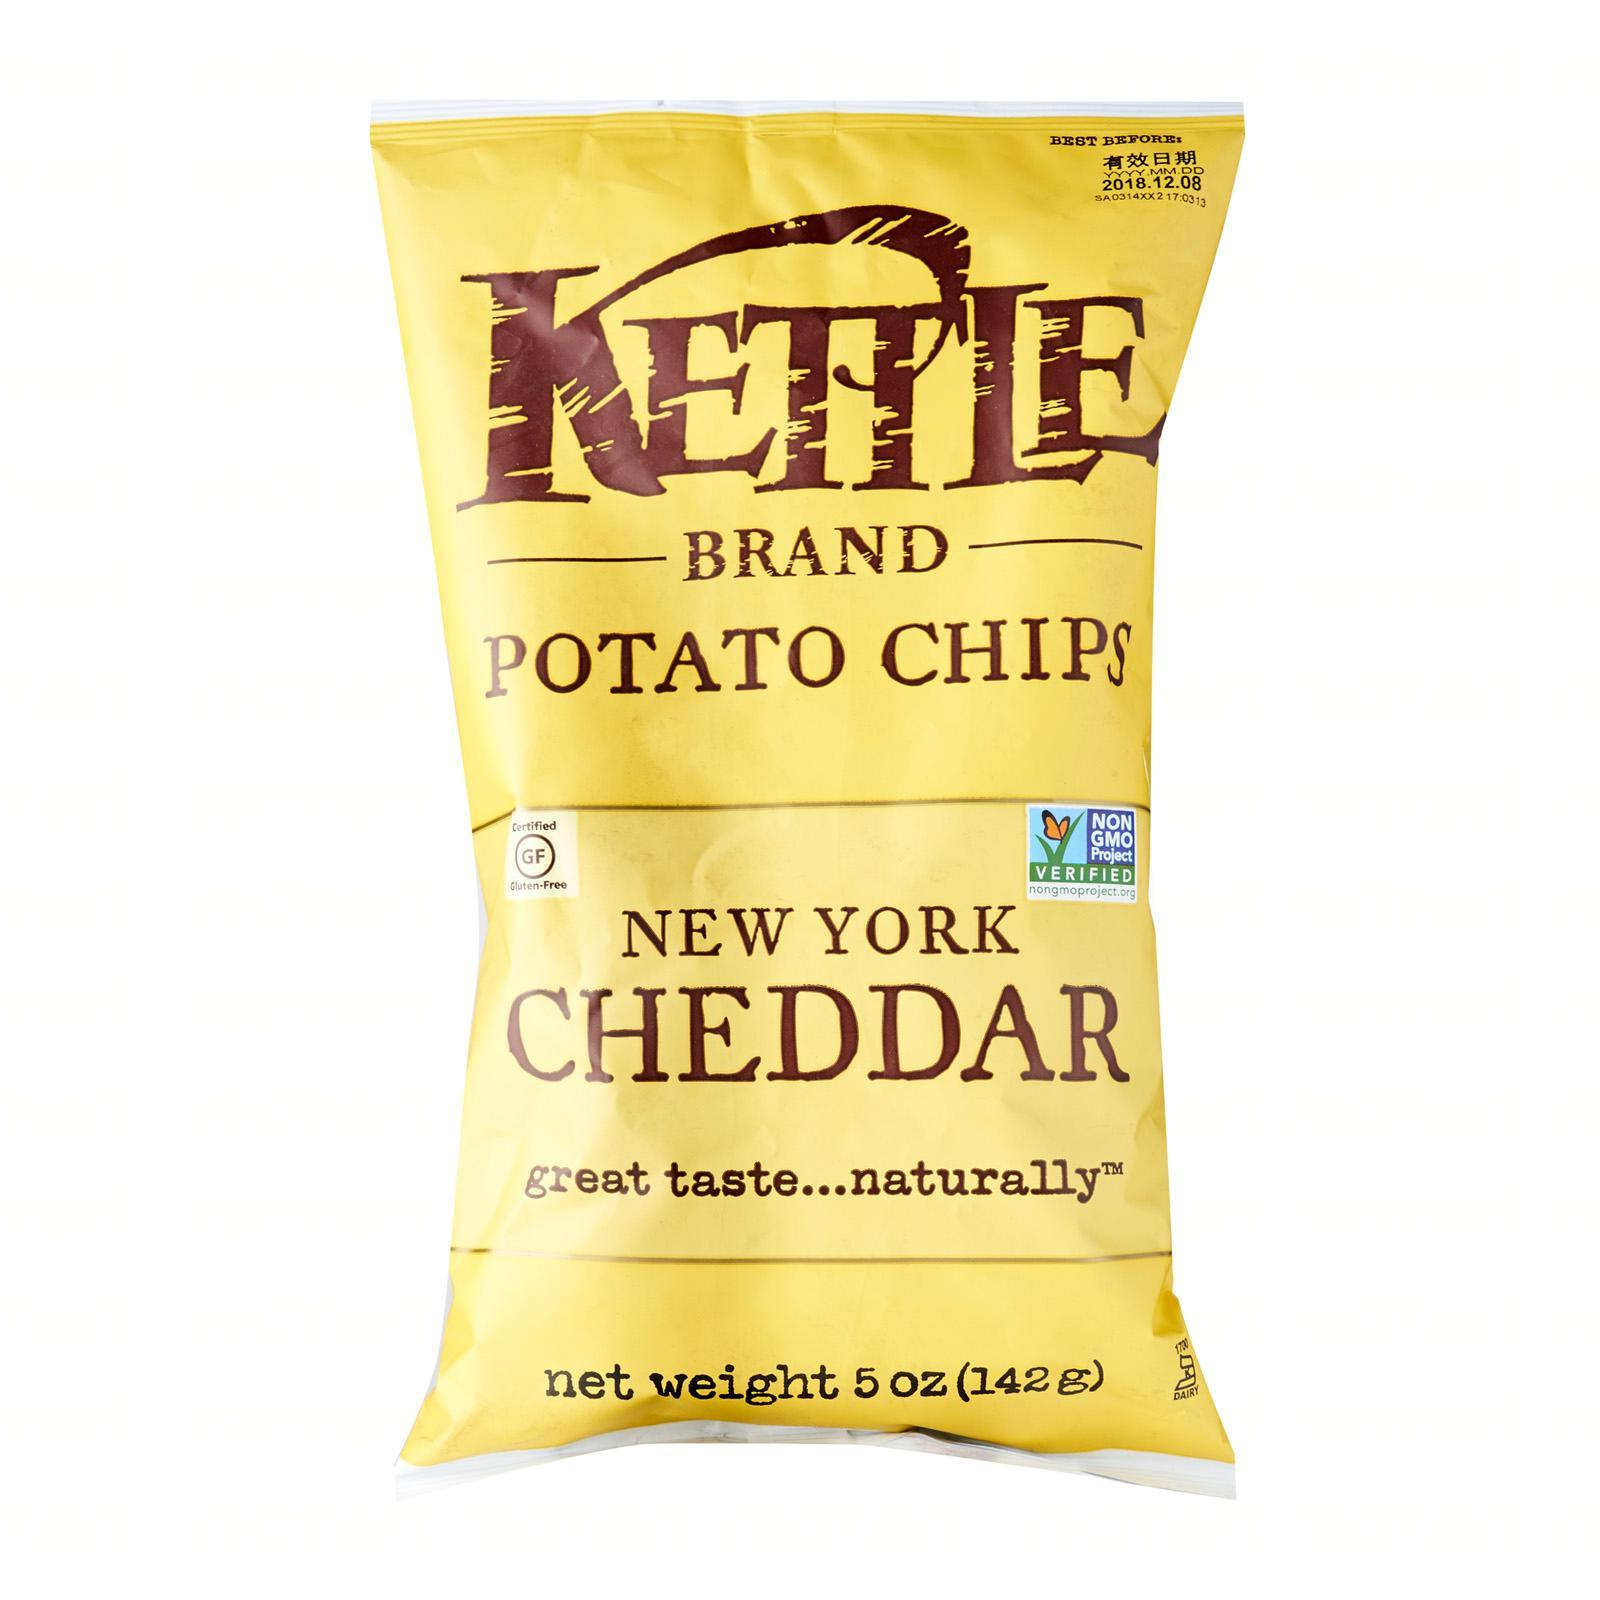 KETTLE Potato Chips New York Cheddar With Herb 142g